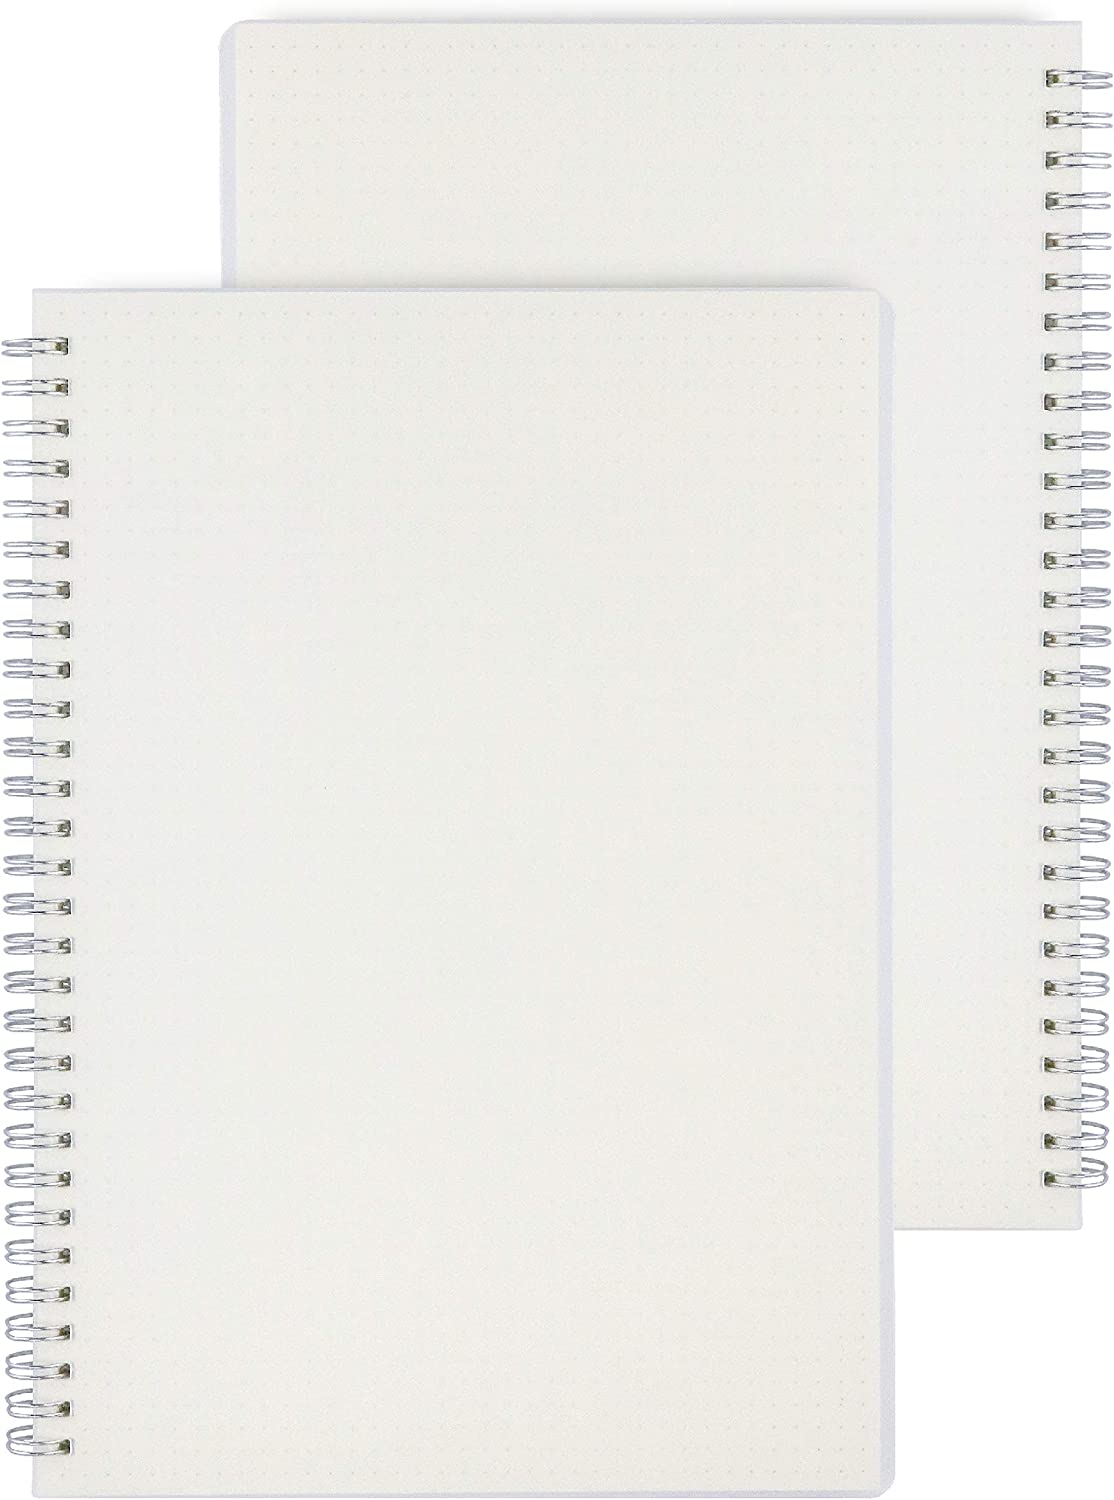 Miliko Transparent Hardcover A5 Size Dot Grid Wirebound/Spiral Notebook-2 Per Pack (Dot Grid), A5 8.27inX5.67in : Office Products